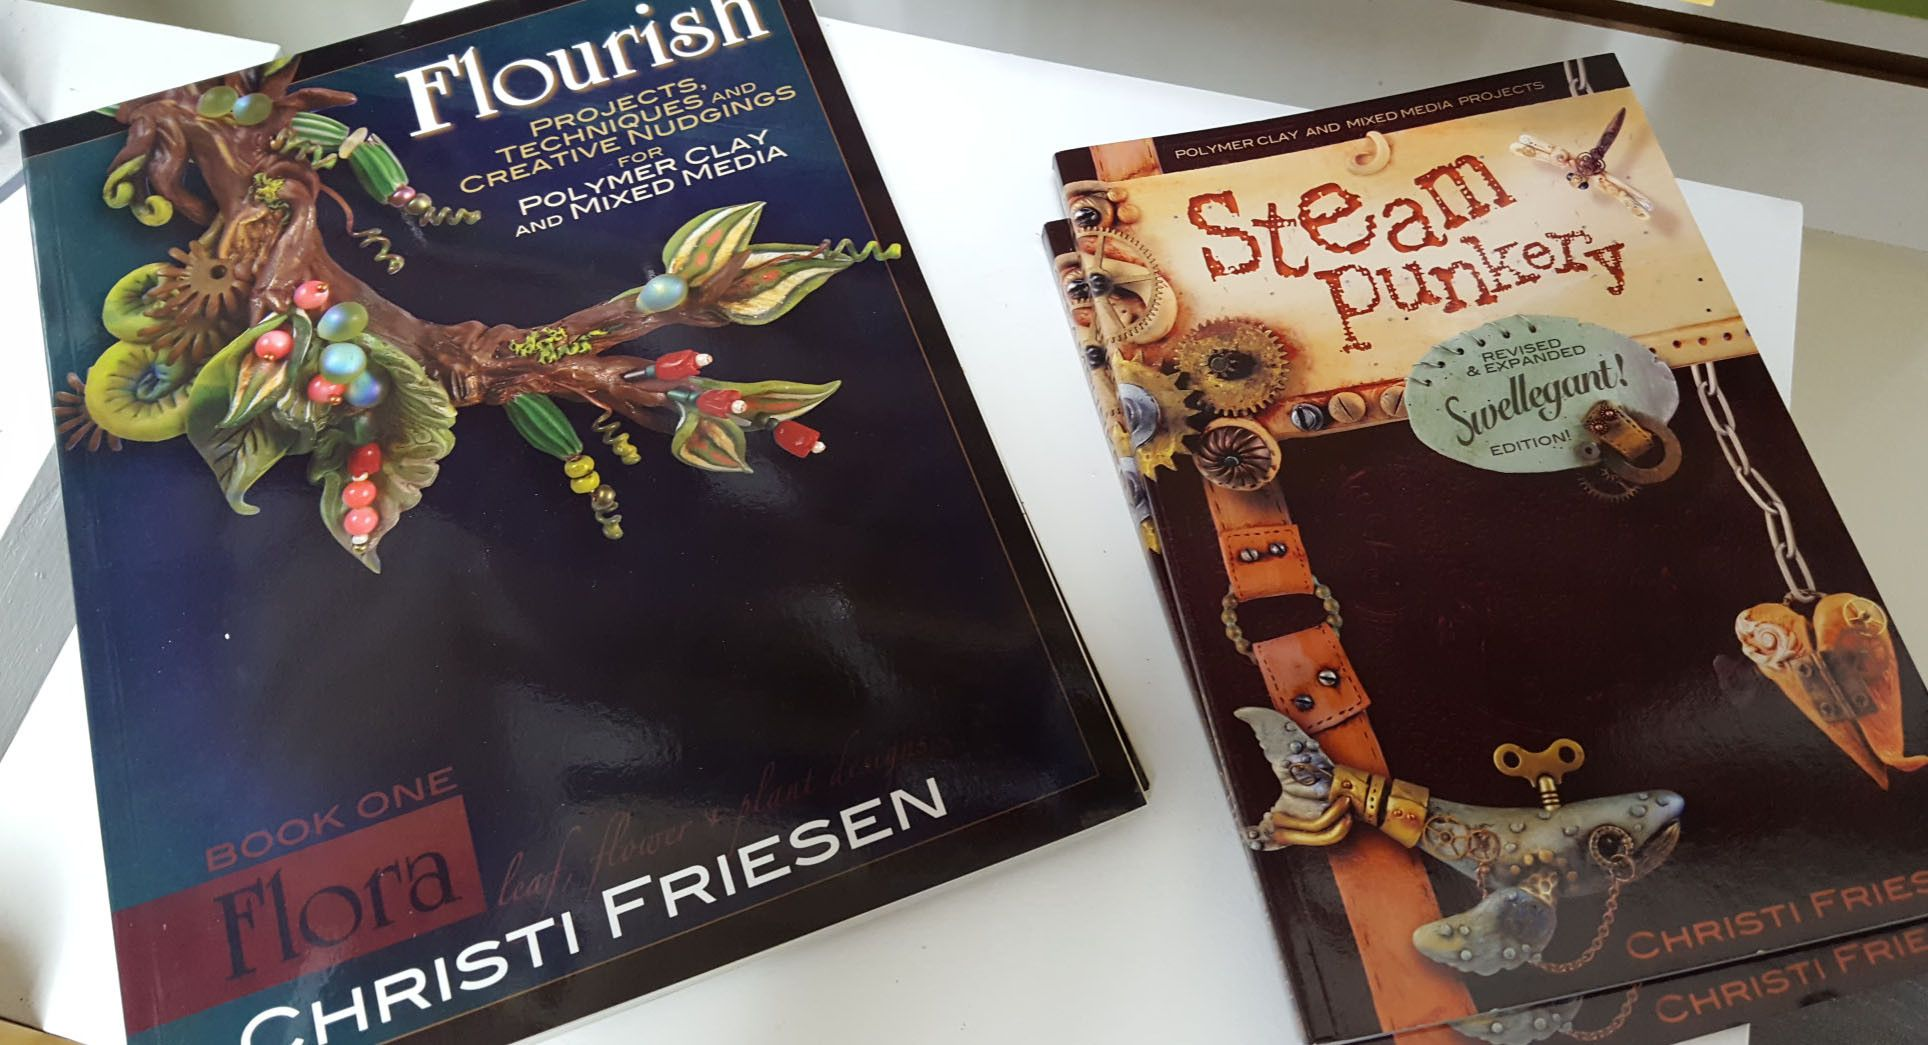 We Have Christi Friesen Creative Books And Products Www